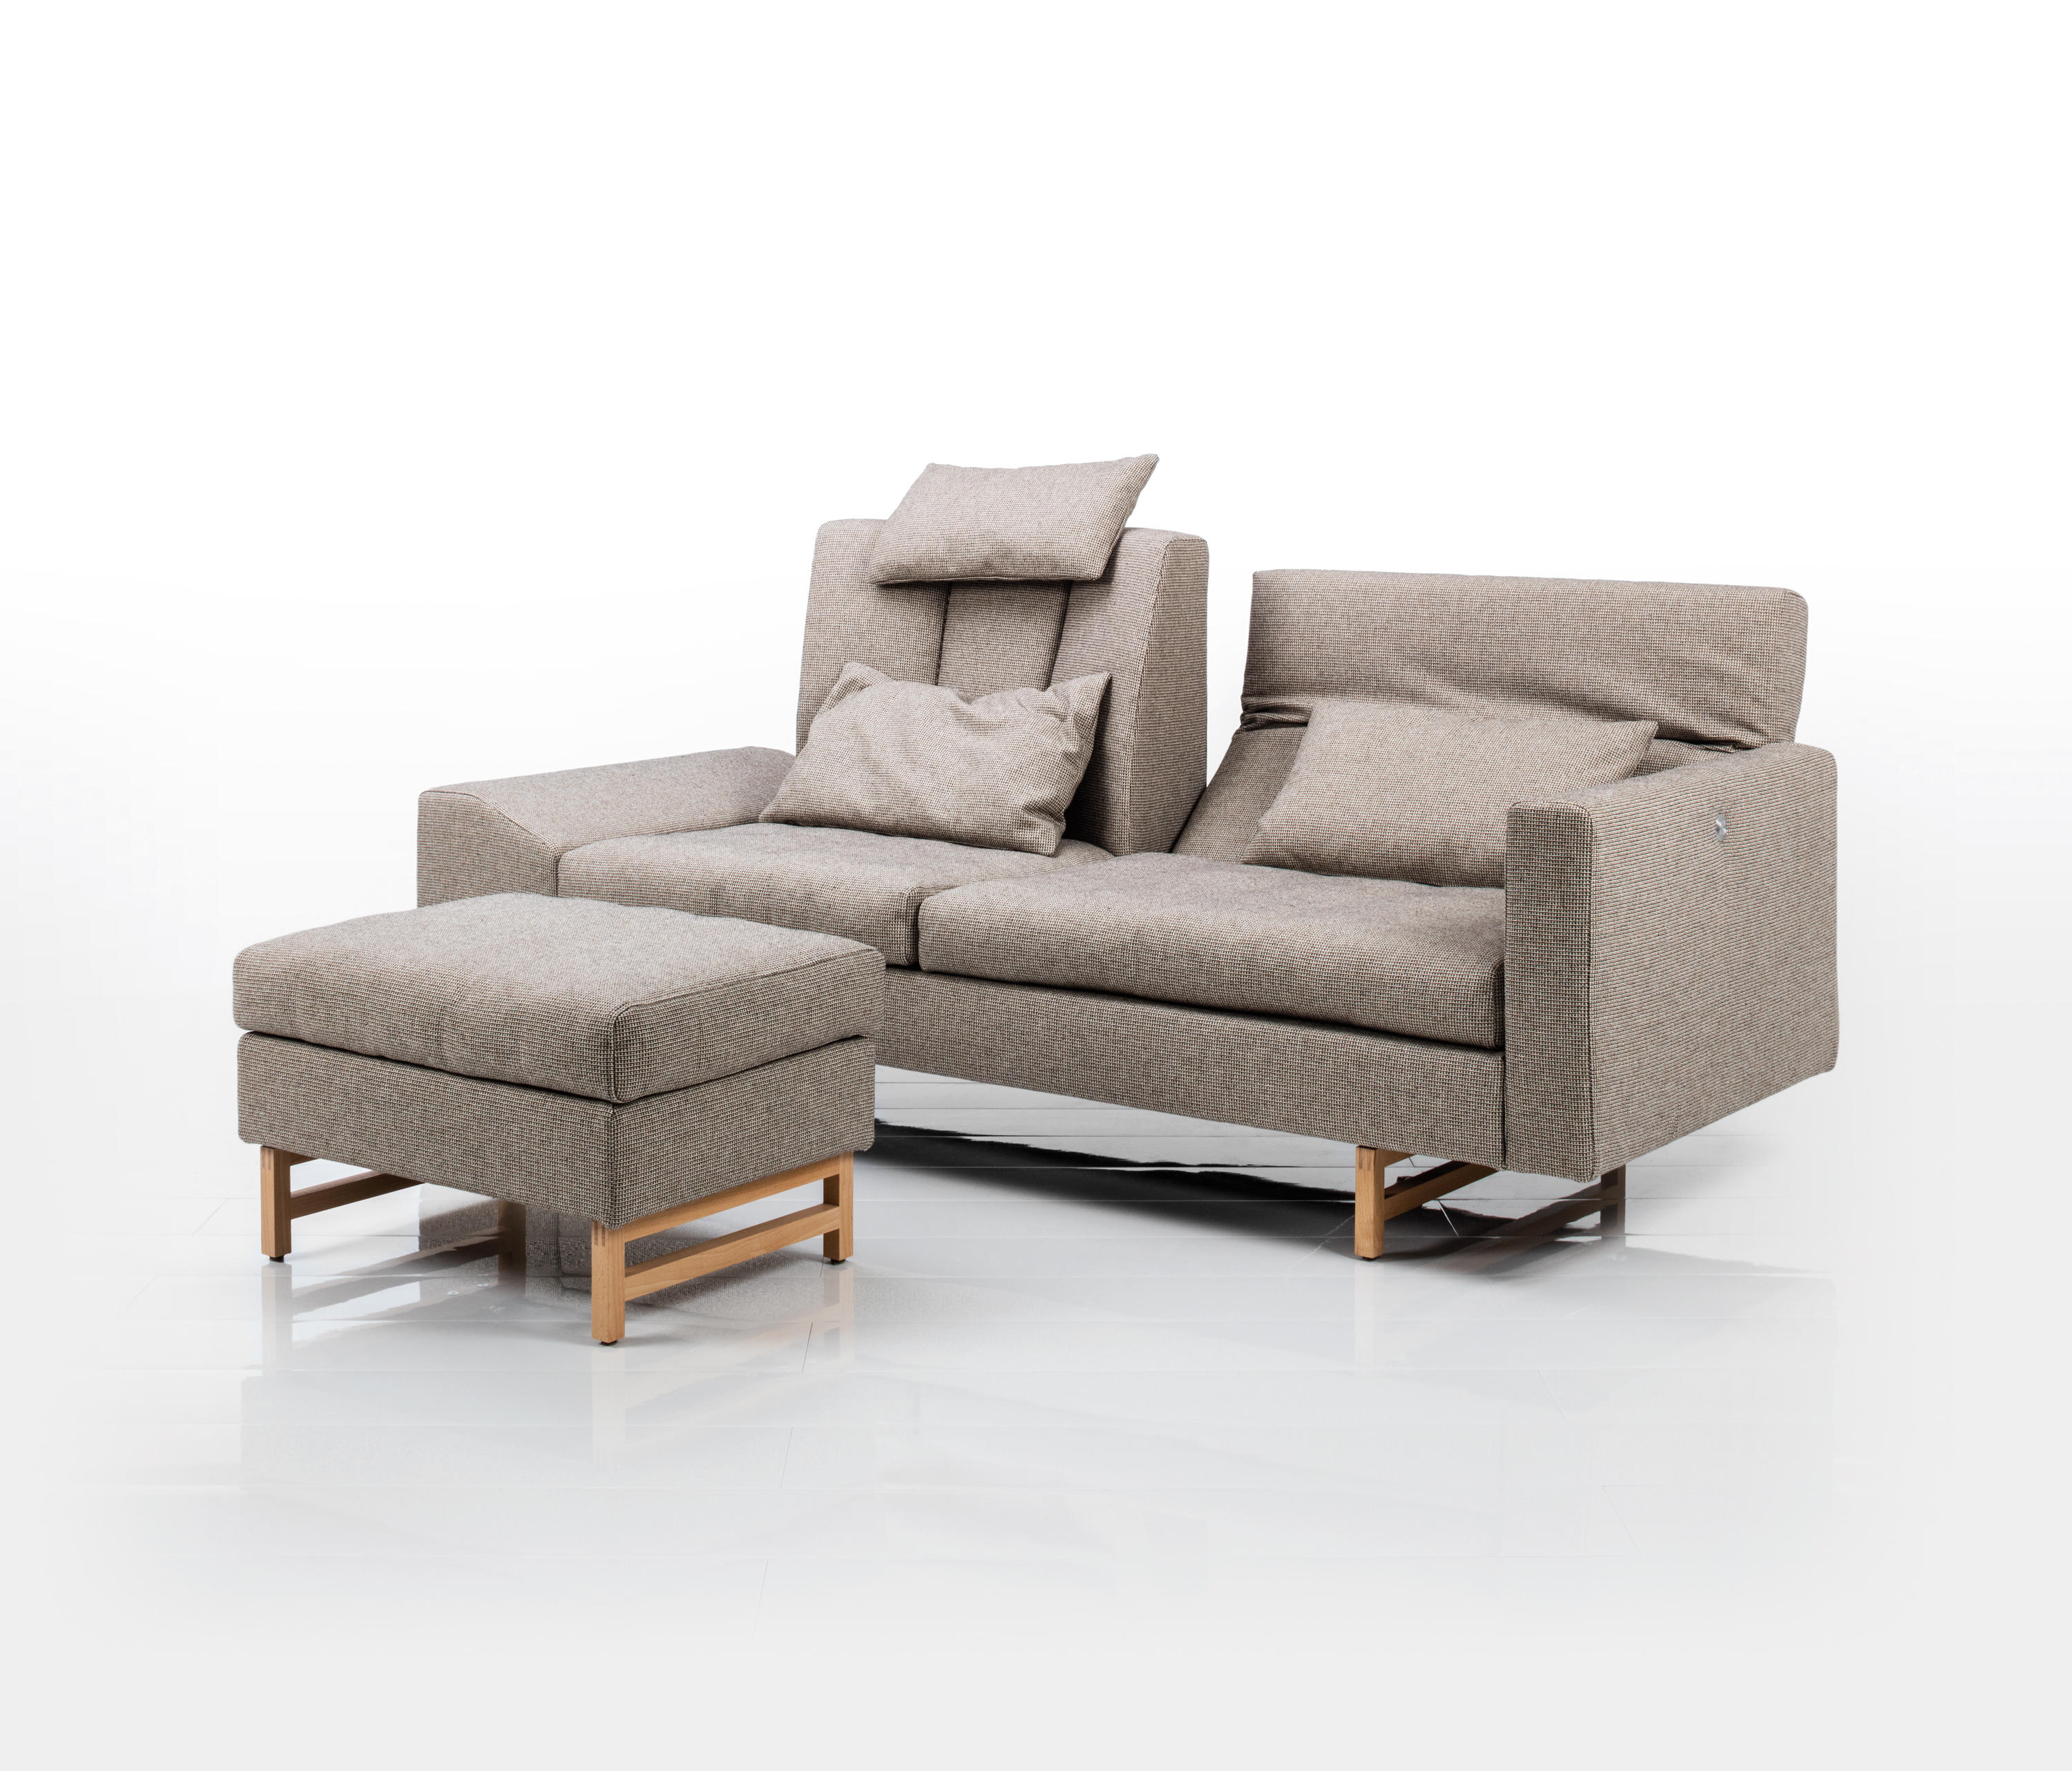 Embrace Seating Collection by Brühl